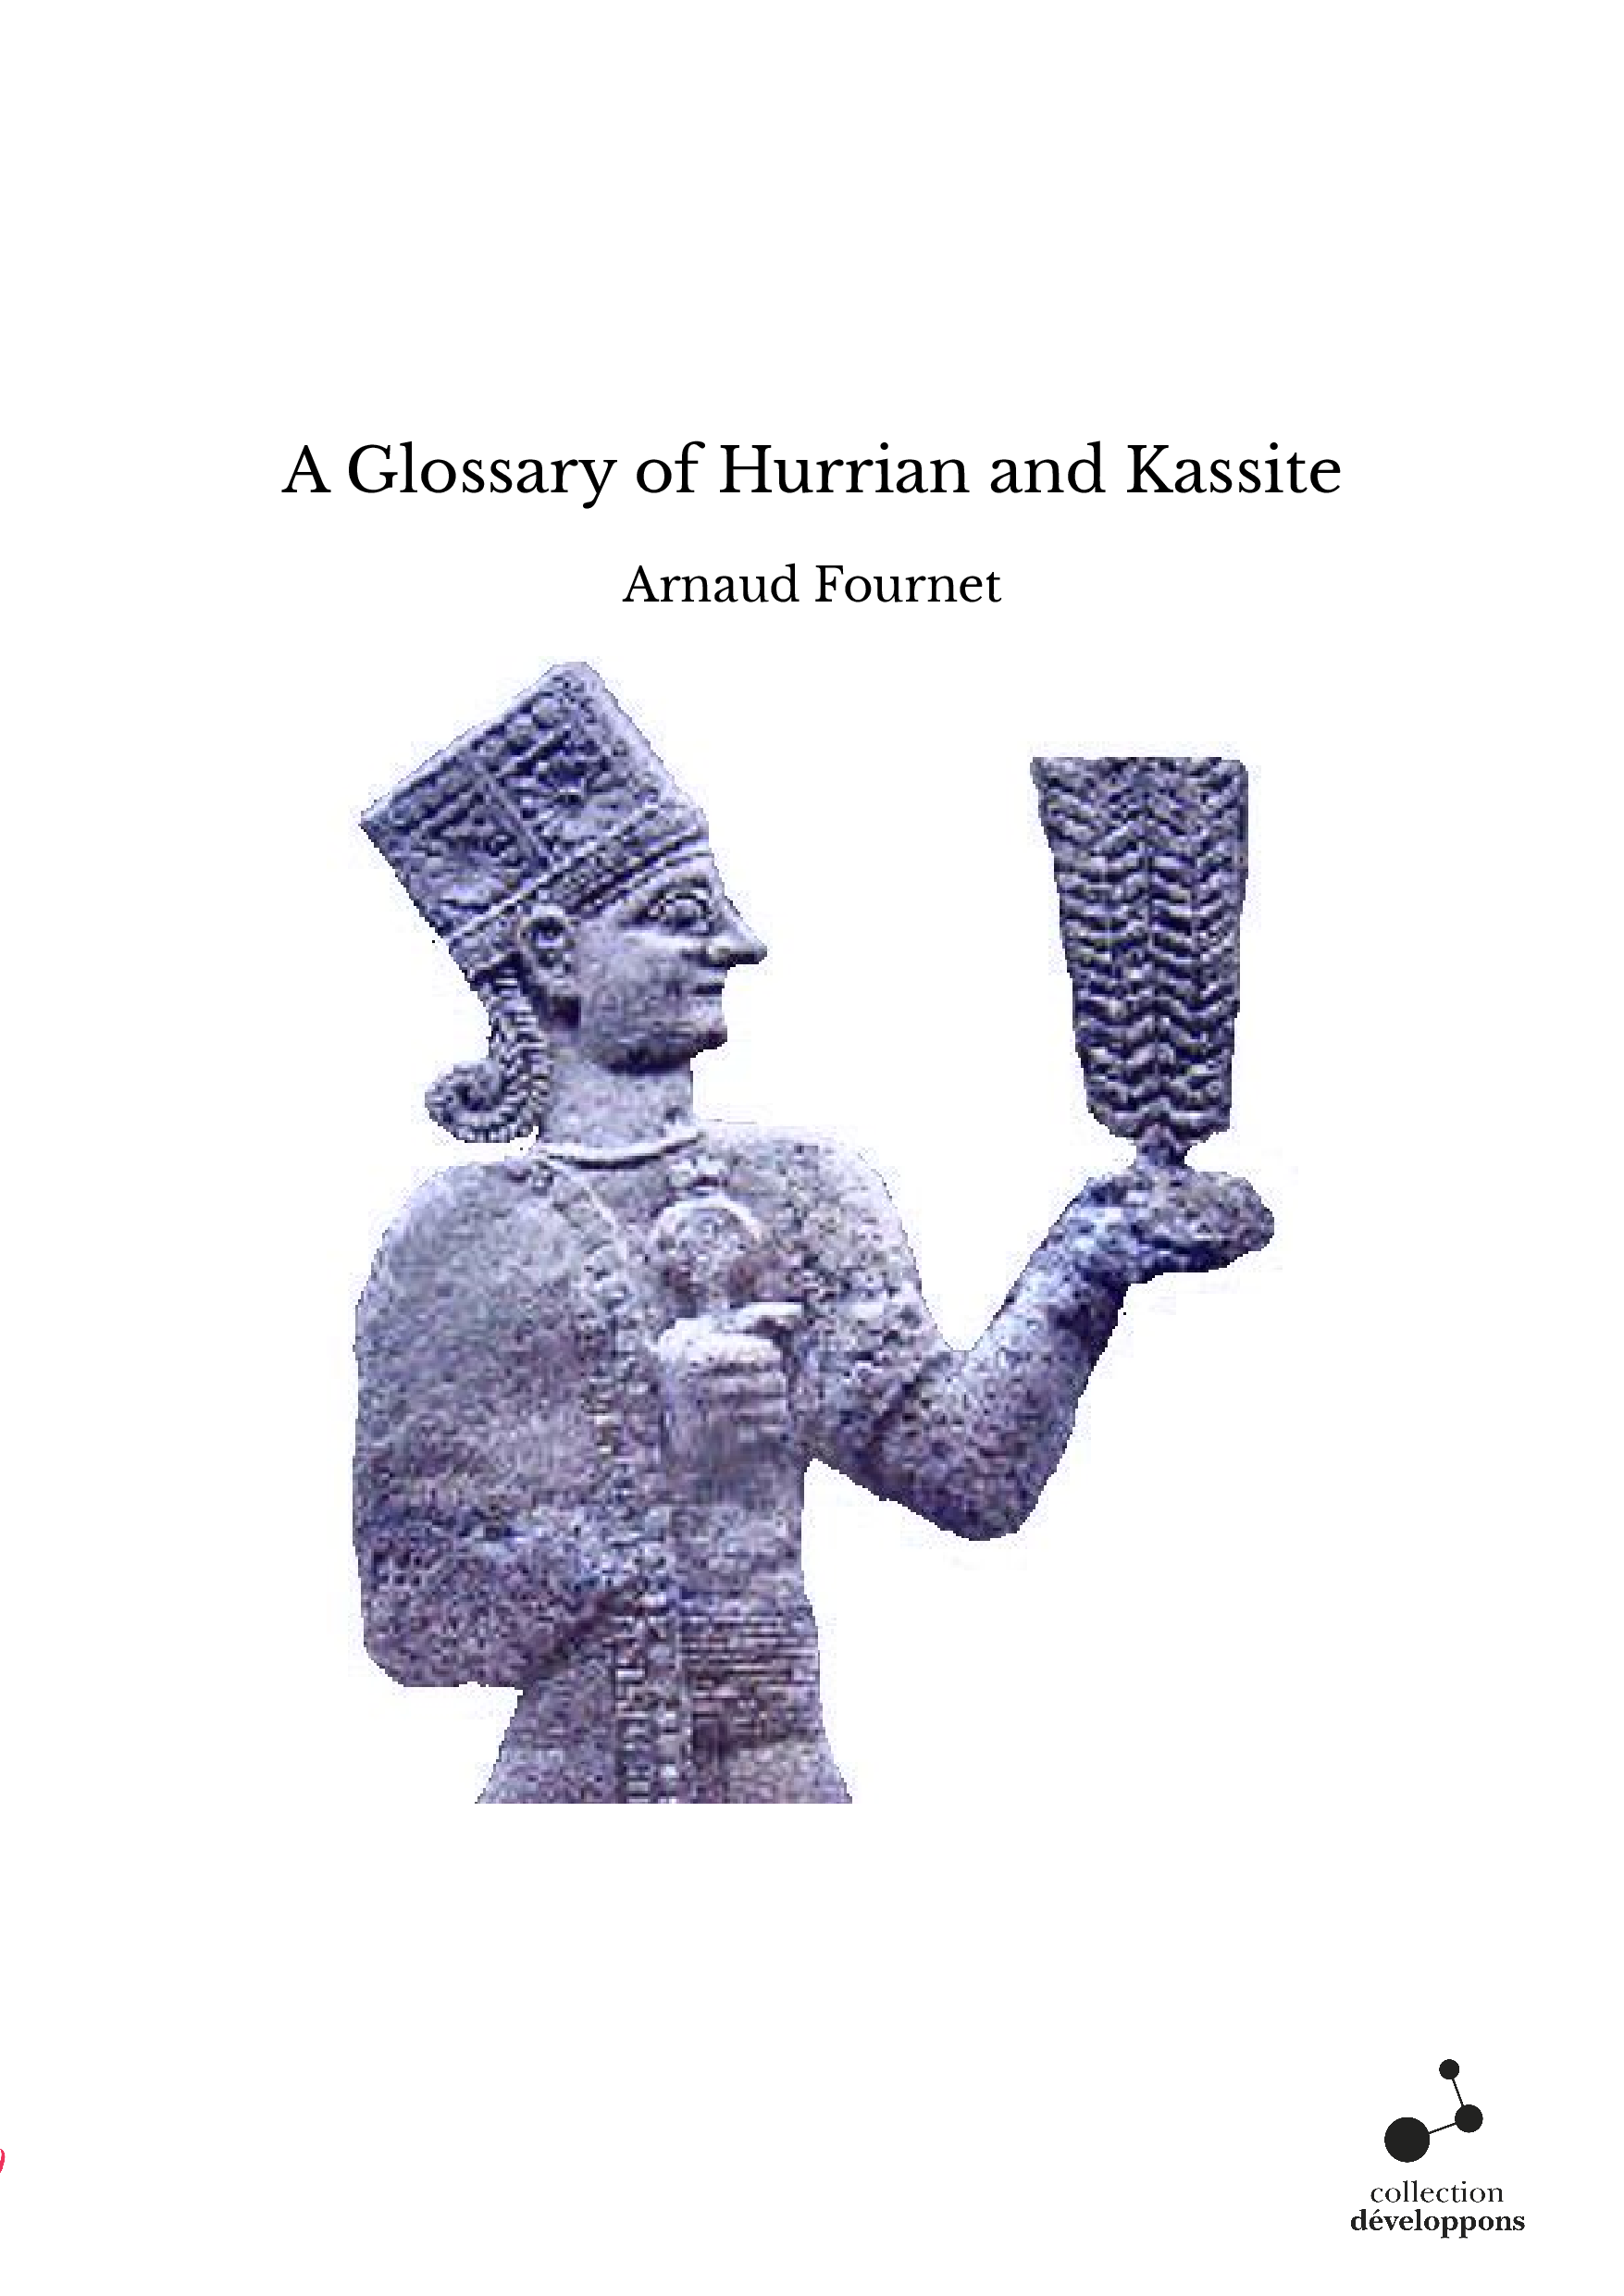 A Glossary of Hurrian and Kassite